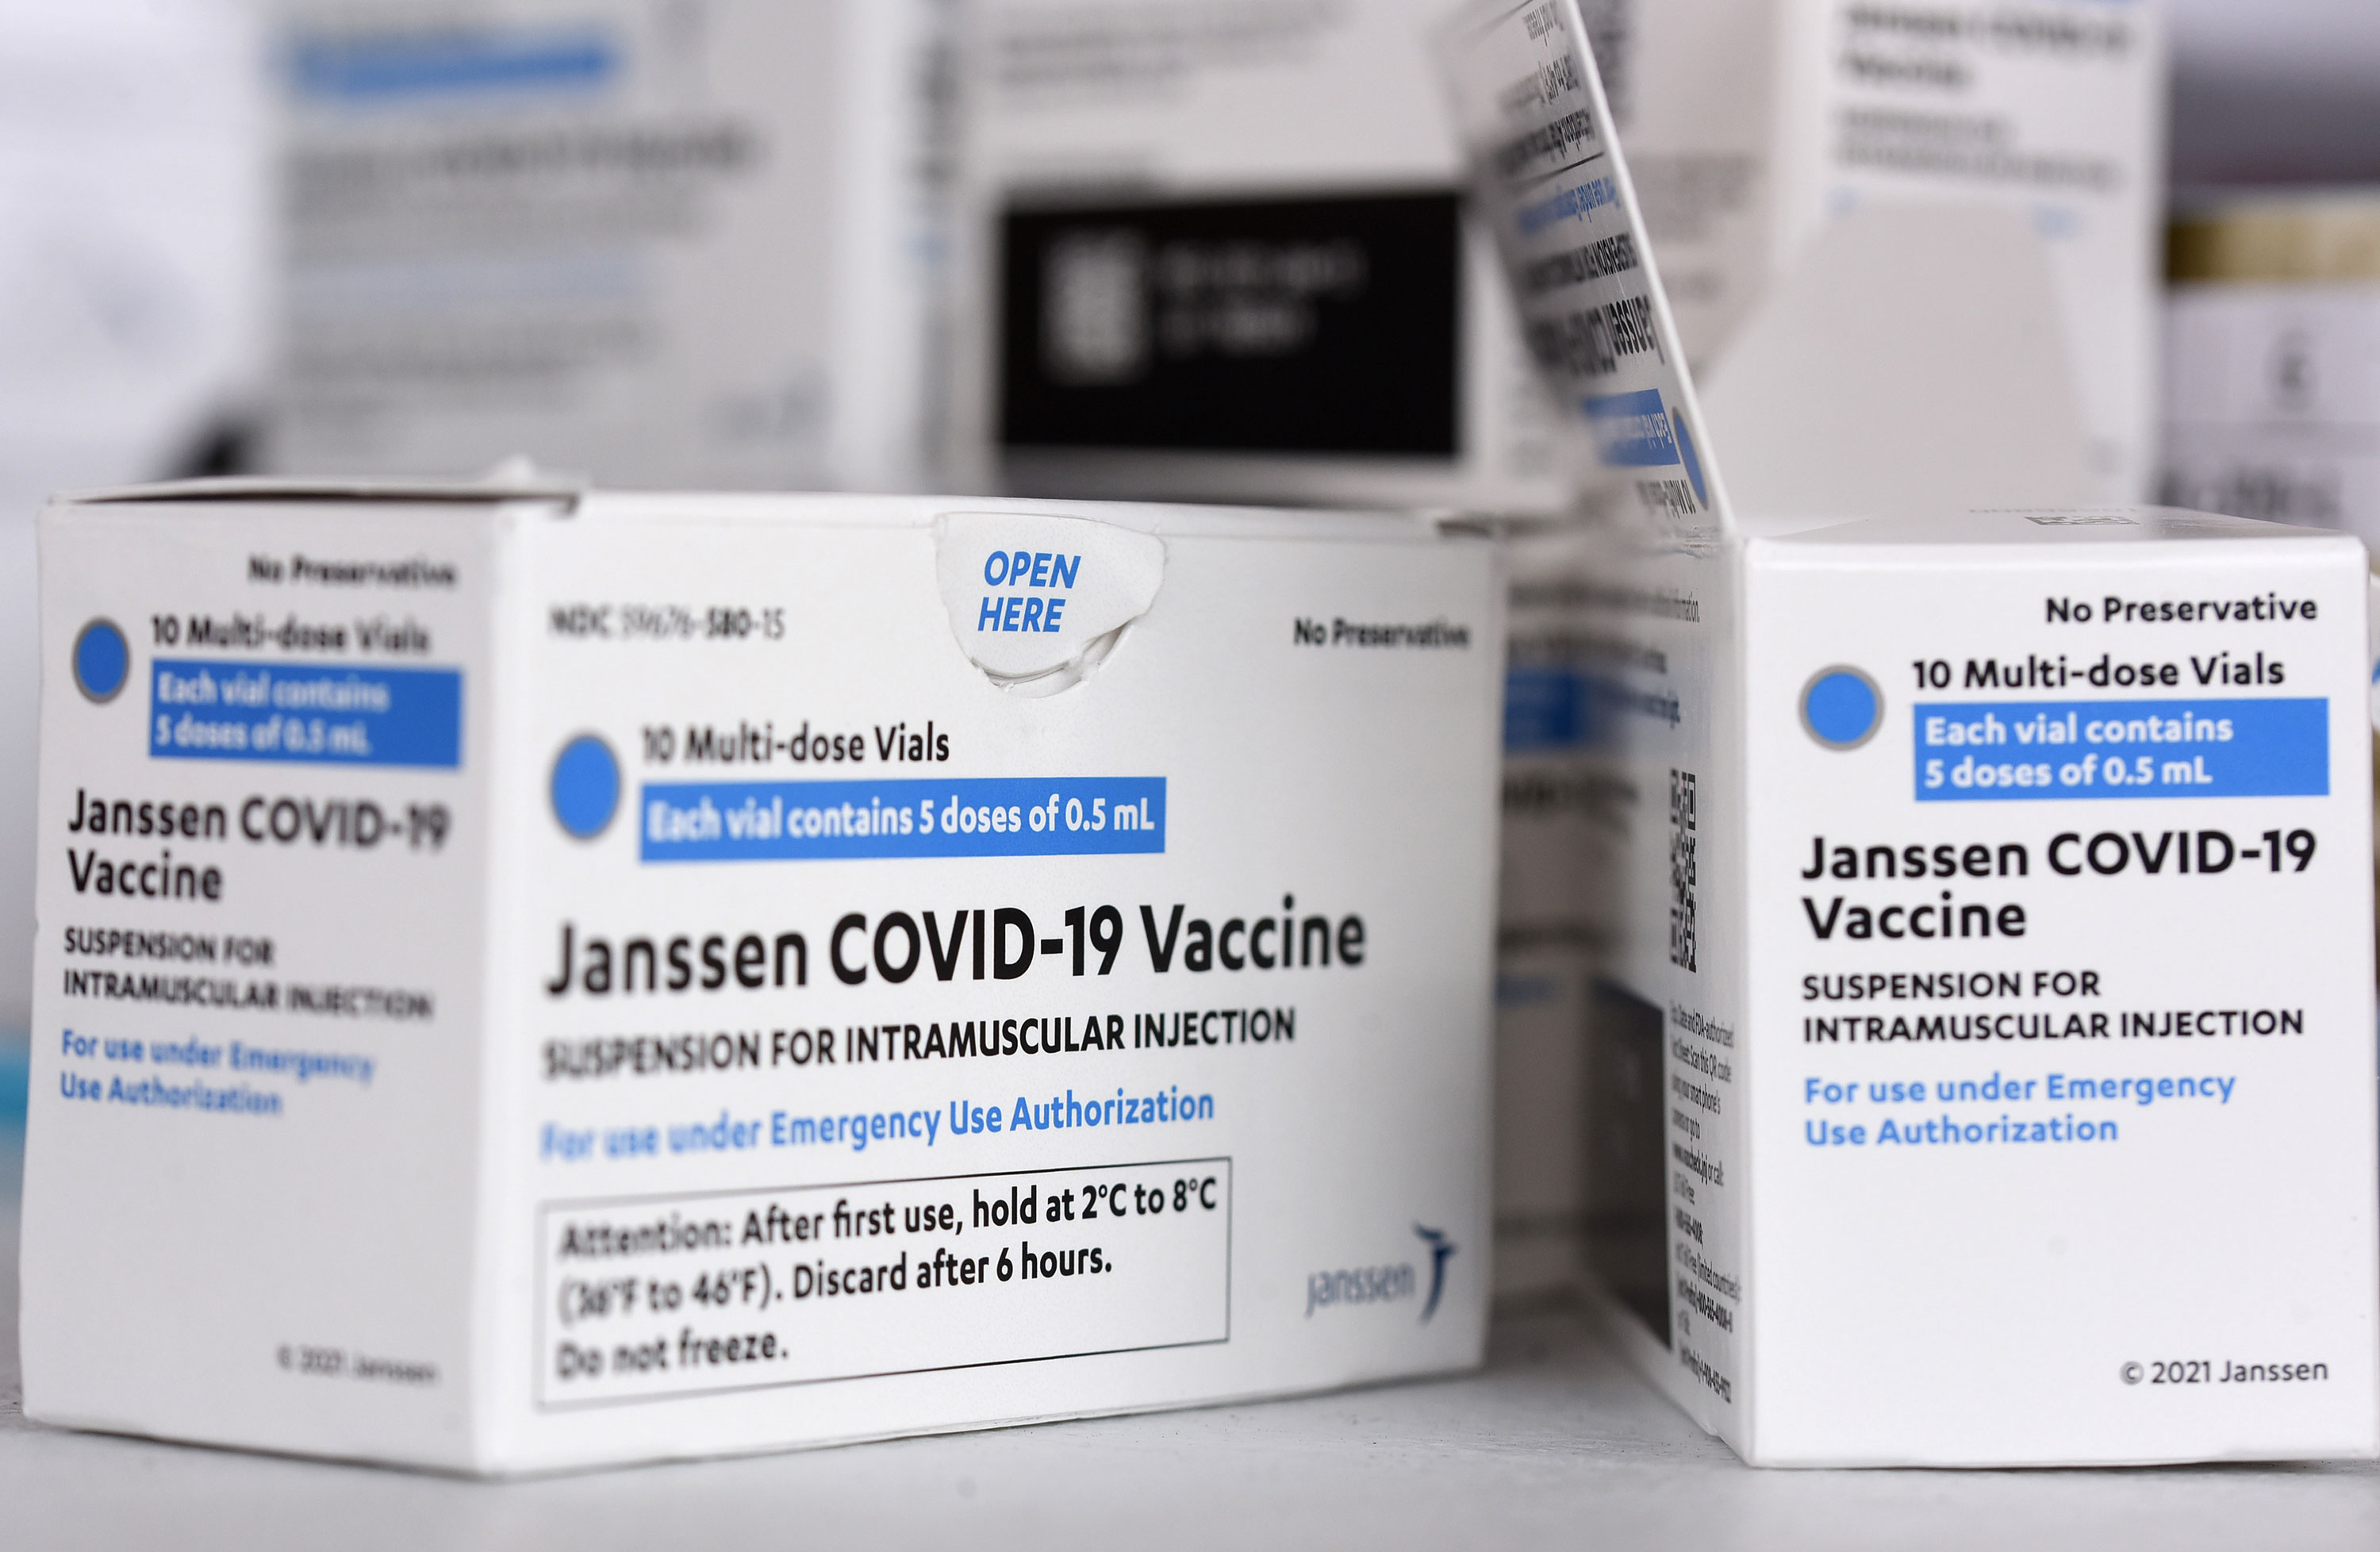 NIH director says J&J vaccine pause will give researchers time to do more study on certain groups